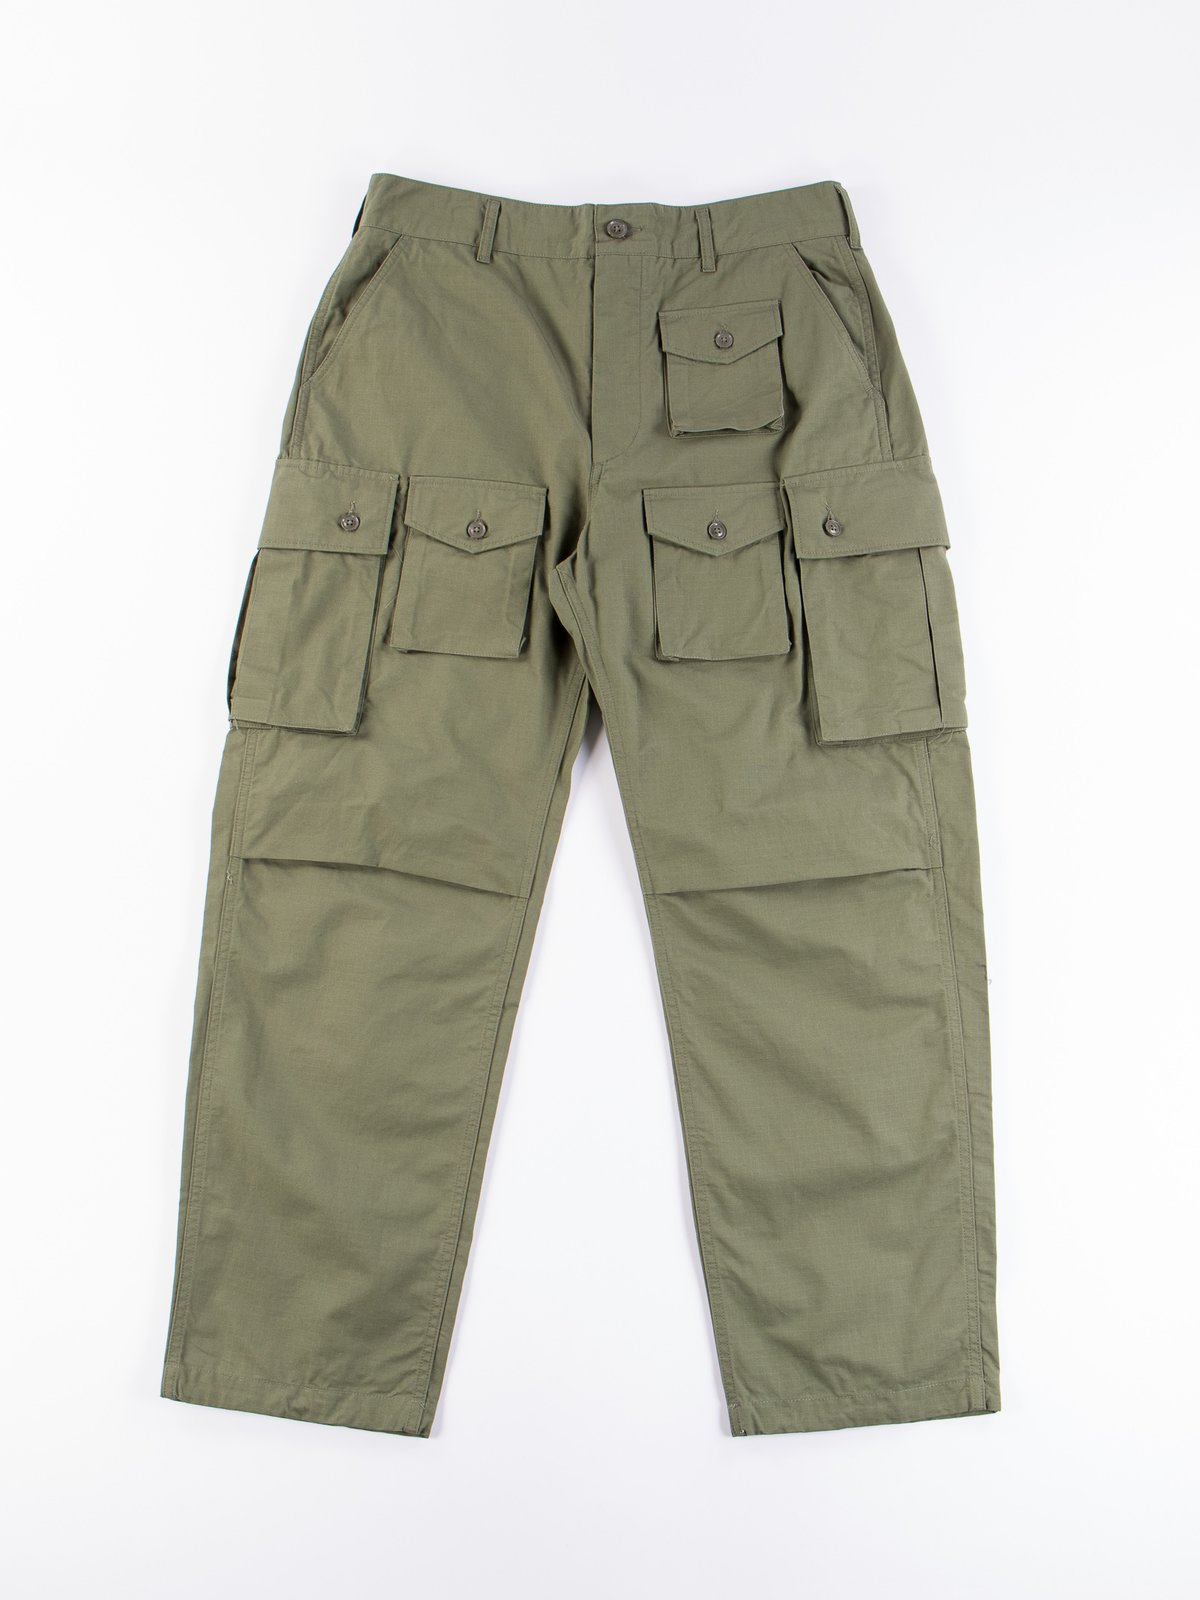 Olive Cotton Ripstop FA Pant - Image 1